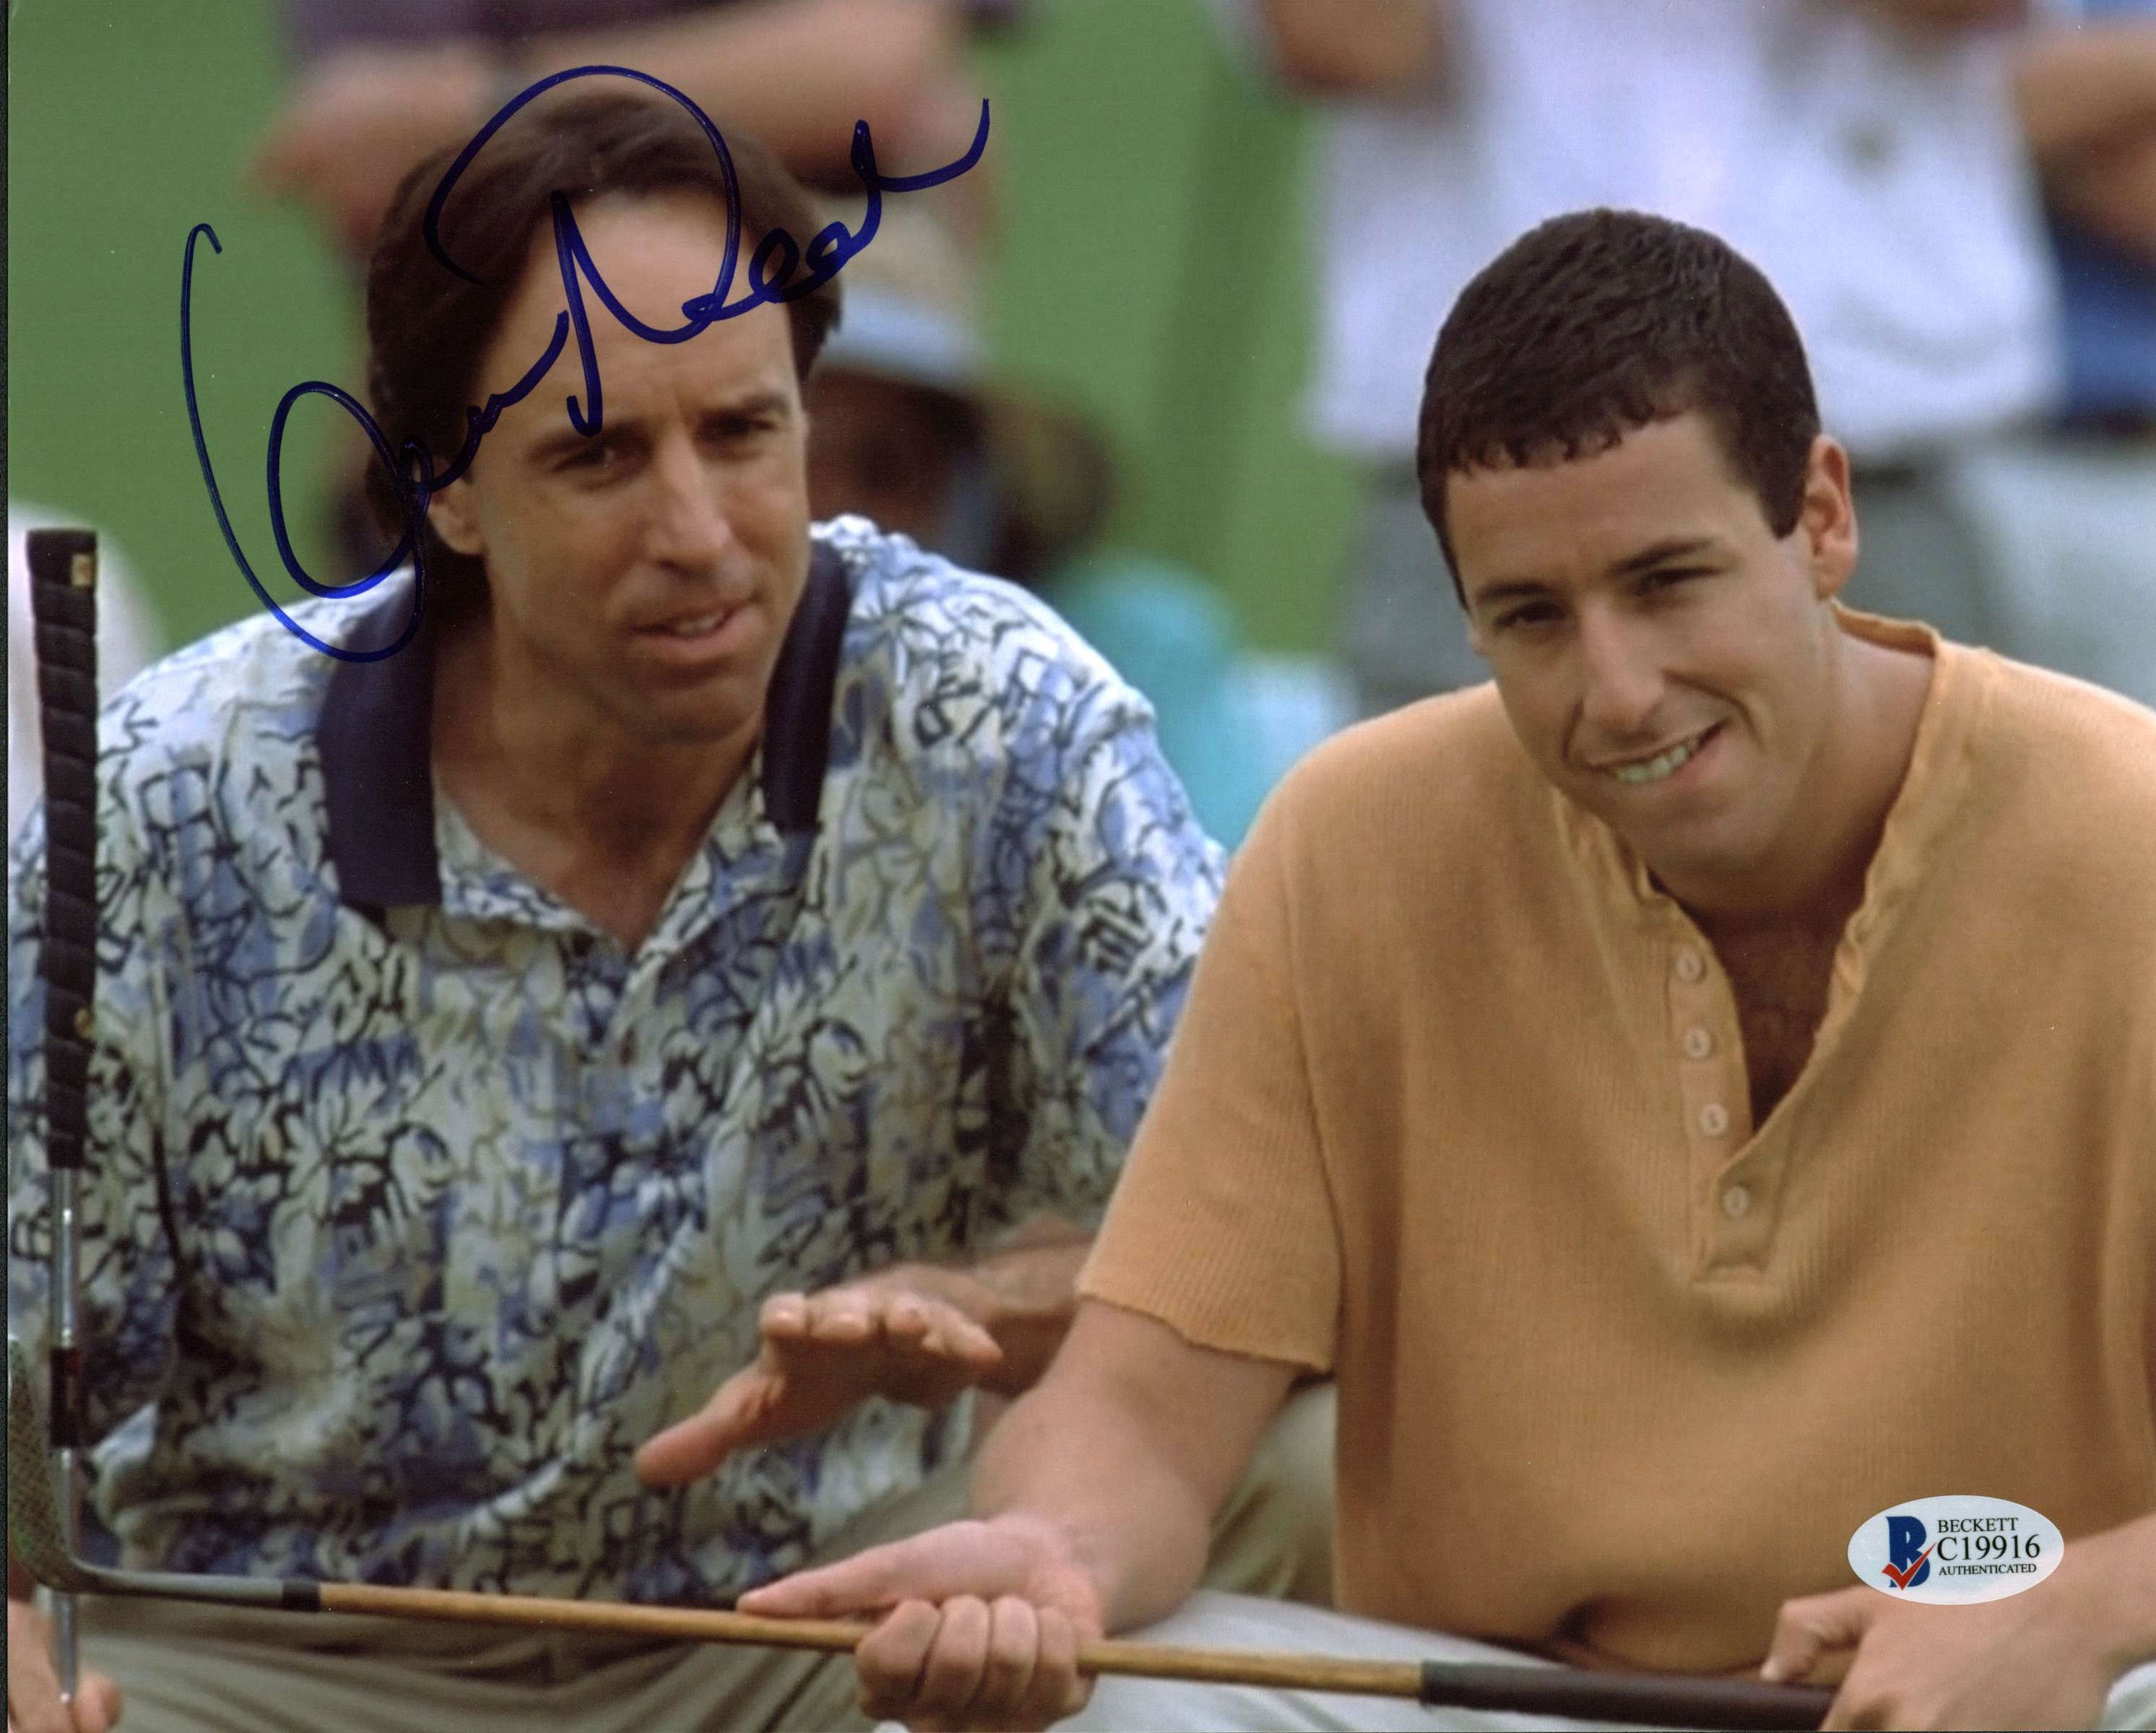 ASandler8x10-7 - Adam Sandler Signed - Autographed Happy Gilmore 8x10 inch Photo